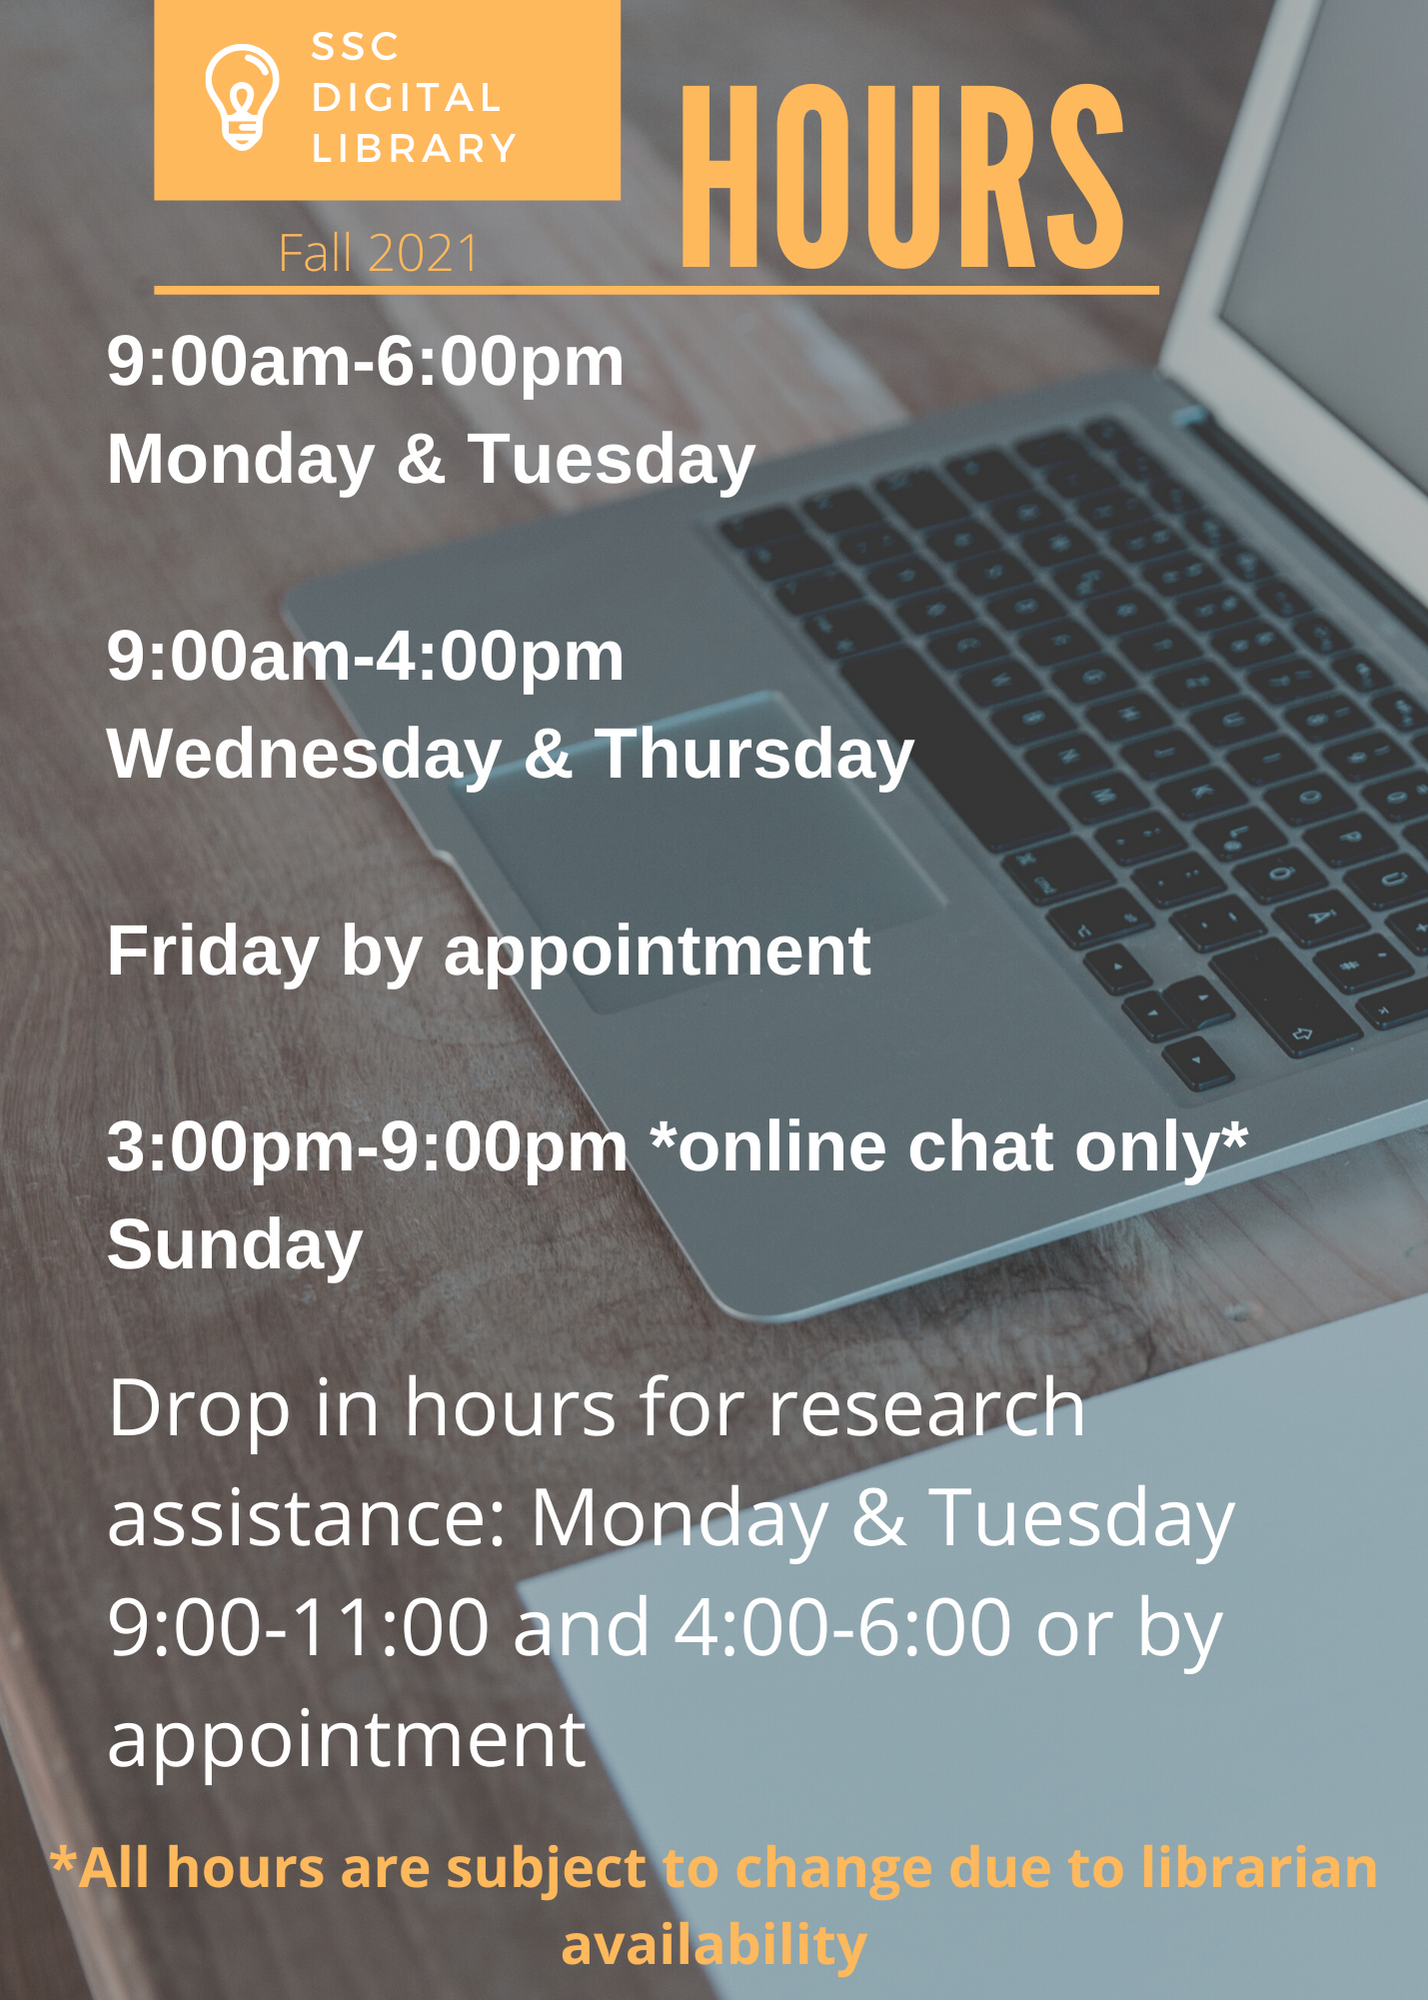 Fall 2021 hours in the library are 9:00am to 6:00pm Monday and Tuesday. 9:00am to 4:00pm Wednesday and Thursday. Friday by appointment. Sunday 3:00pm to 9:00pm online chat only.